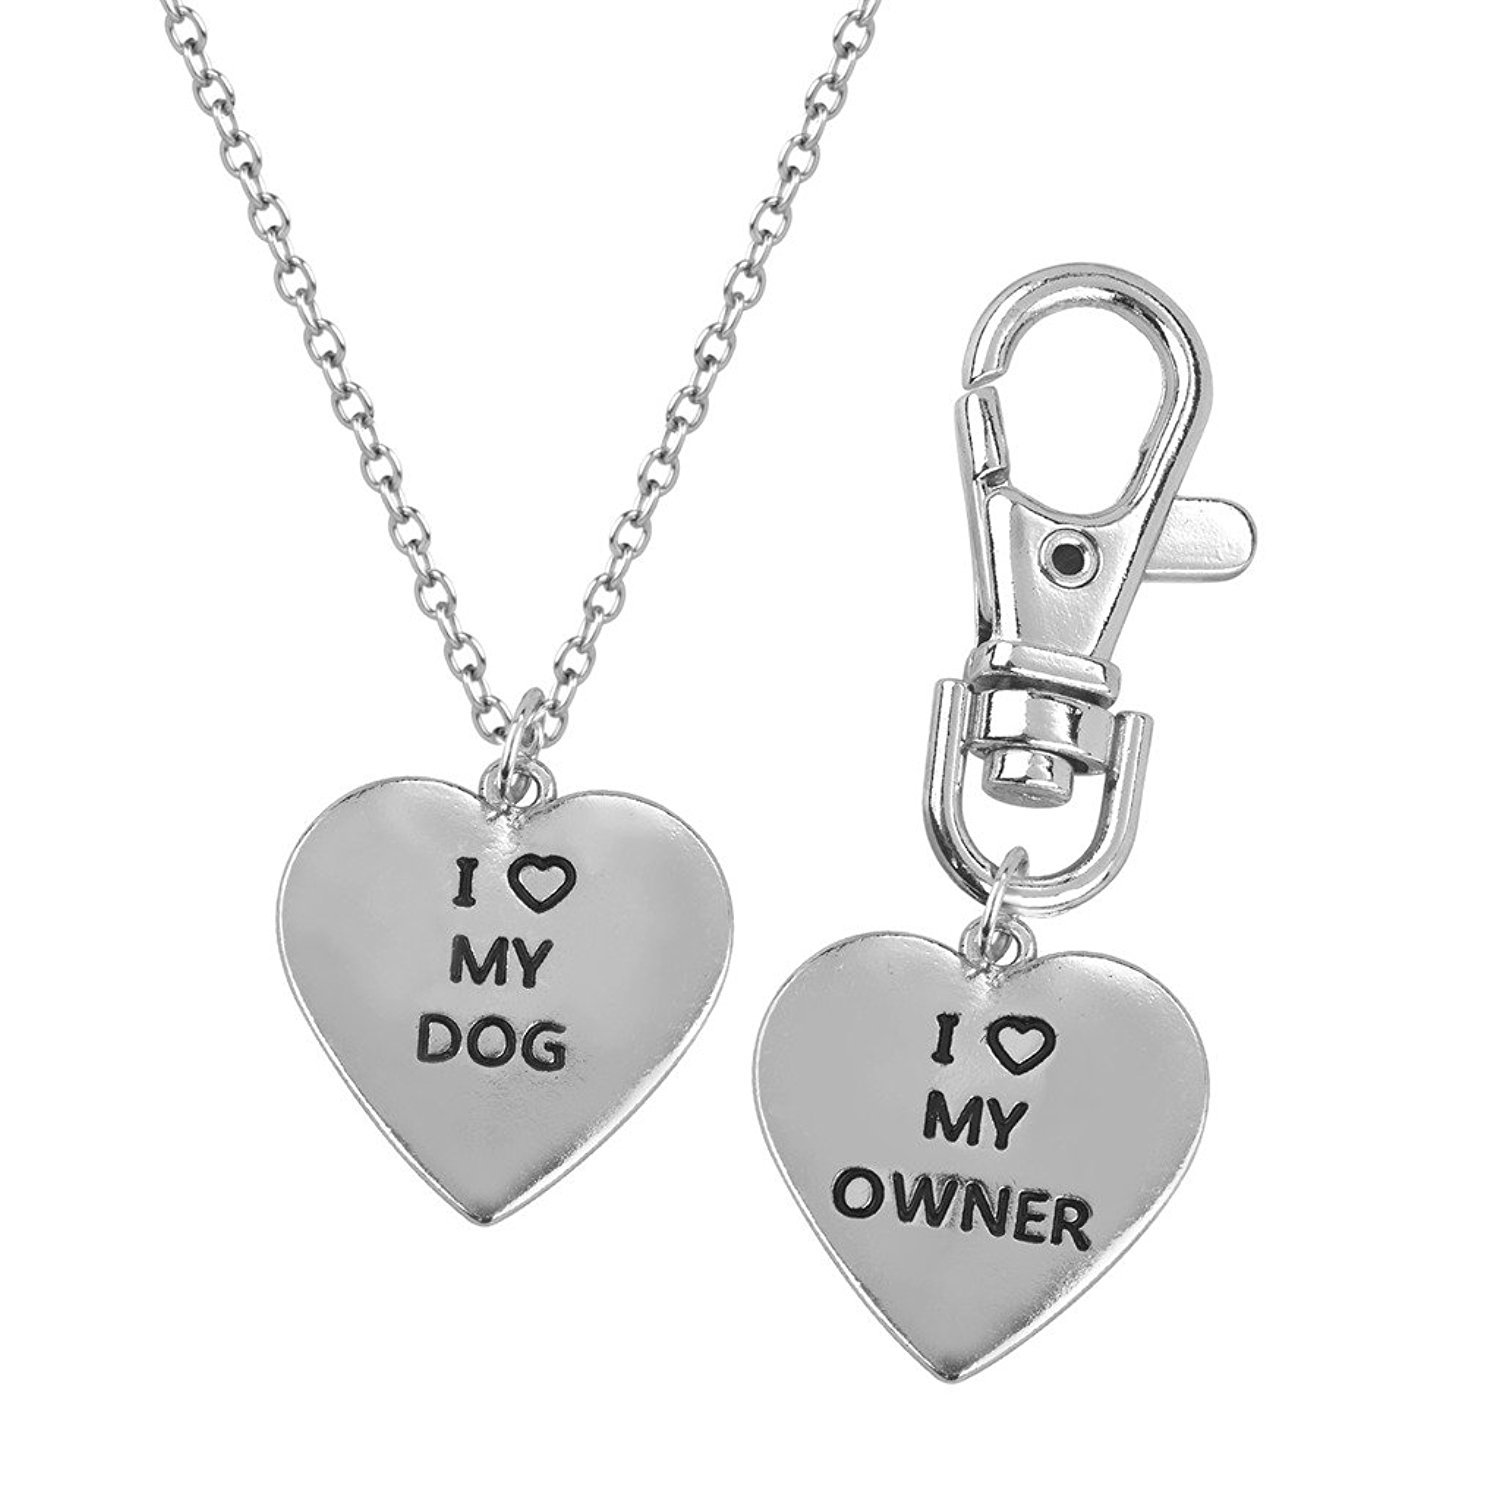 Love my Dog/Owner by Luvalti -Necklace & Keychain Set - Necklace for Animal Lovers